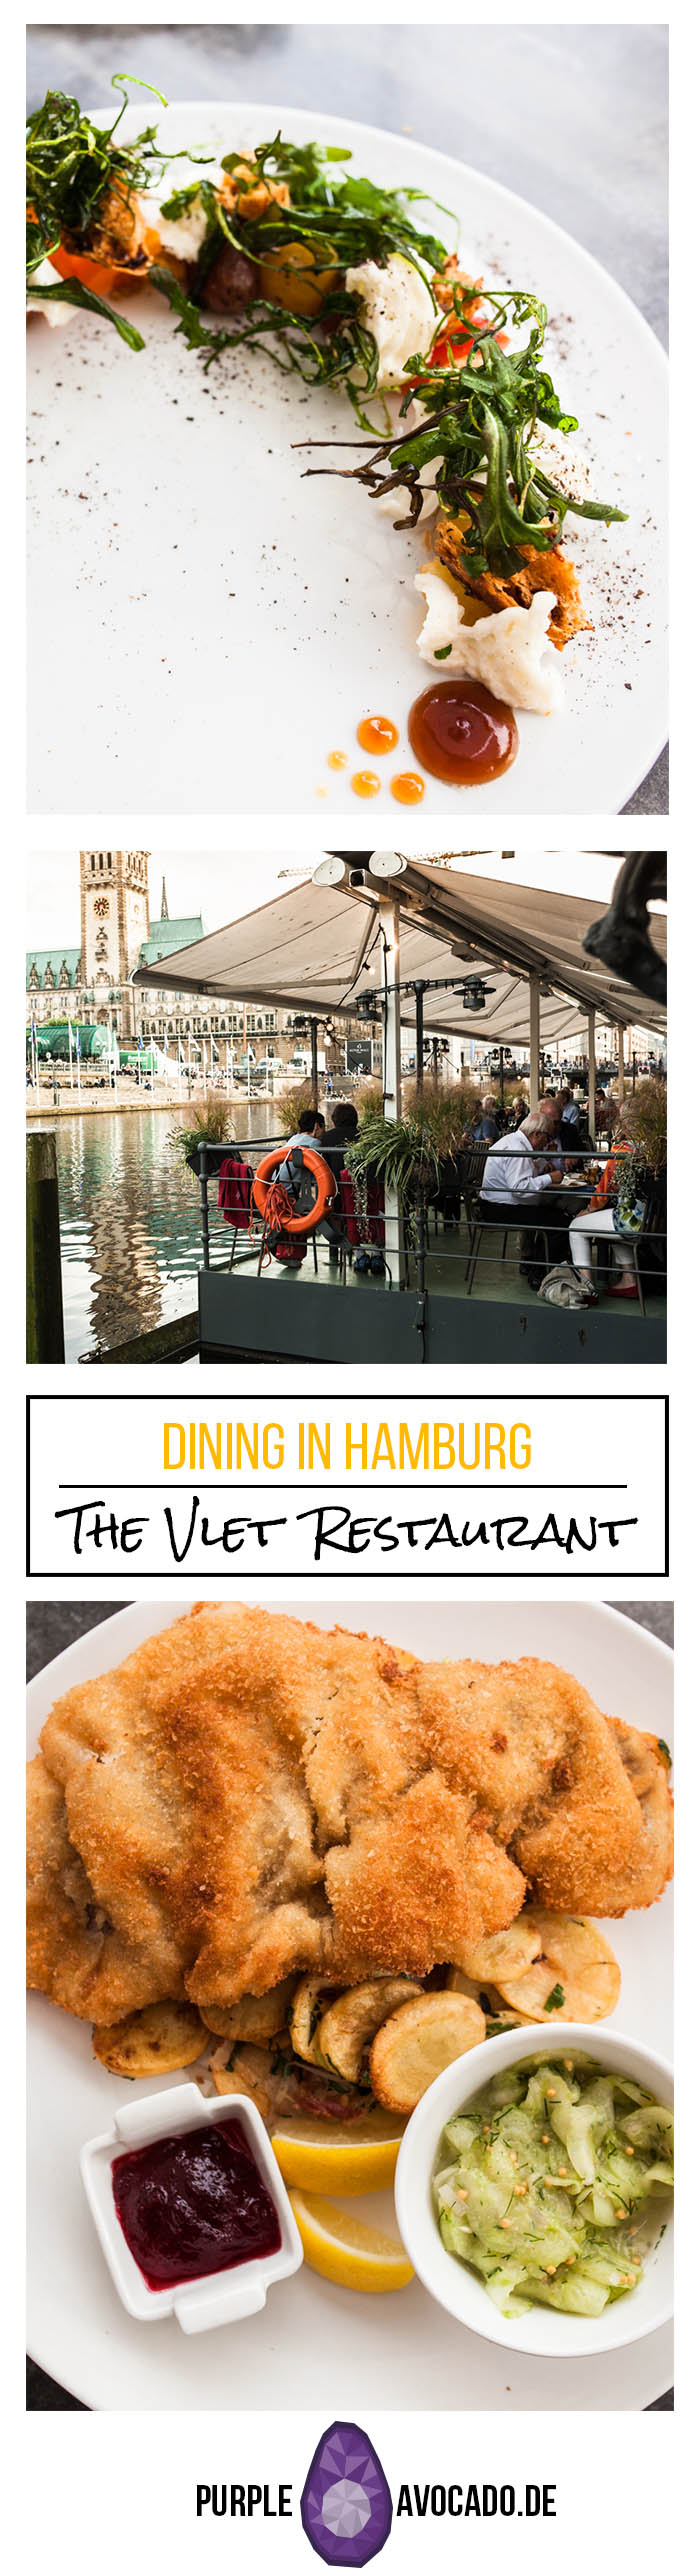 Restaurant Guide Hamburg - In Hamburg there are many, many places with good food. If you want to savour authentic Hamburg cuisine I'm sending you directly to the Vlet at the Alster. #restaurant #europe #germany #food #city #guide #hamburg